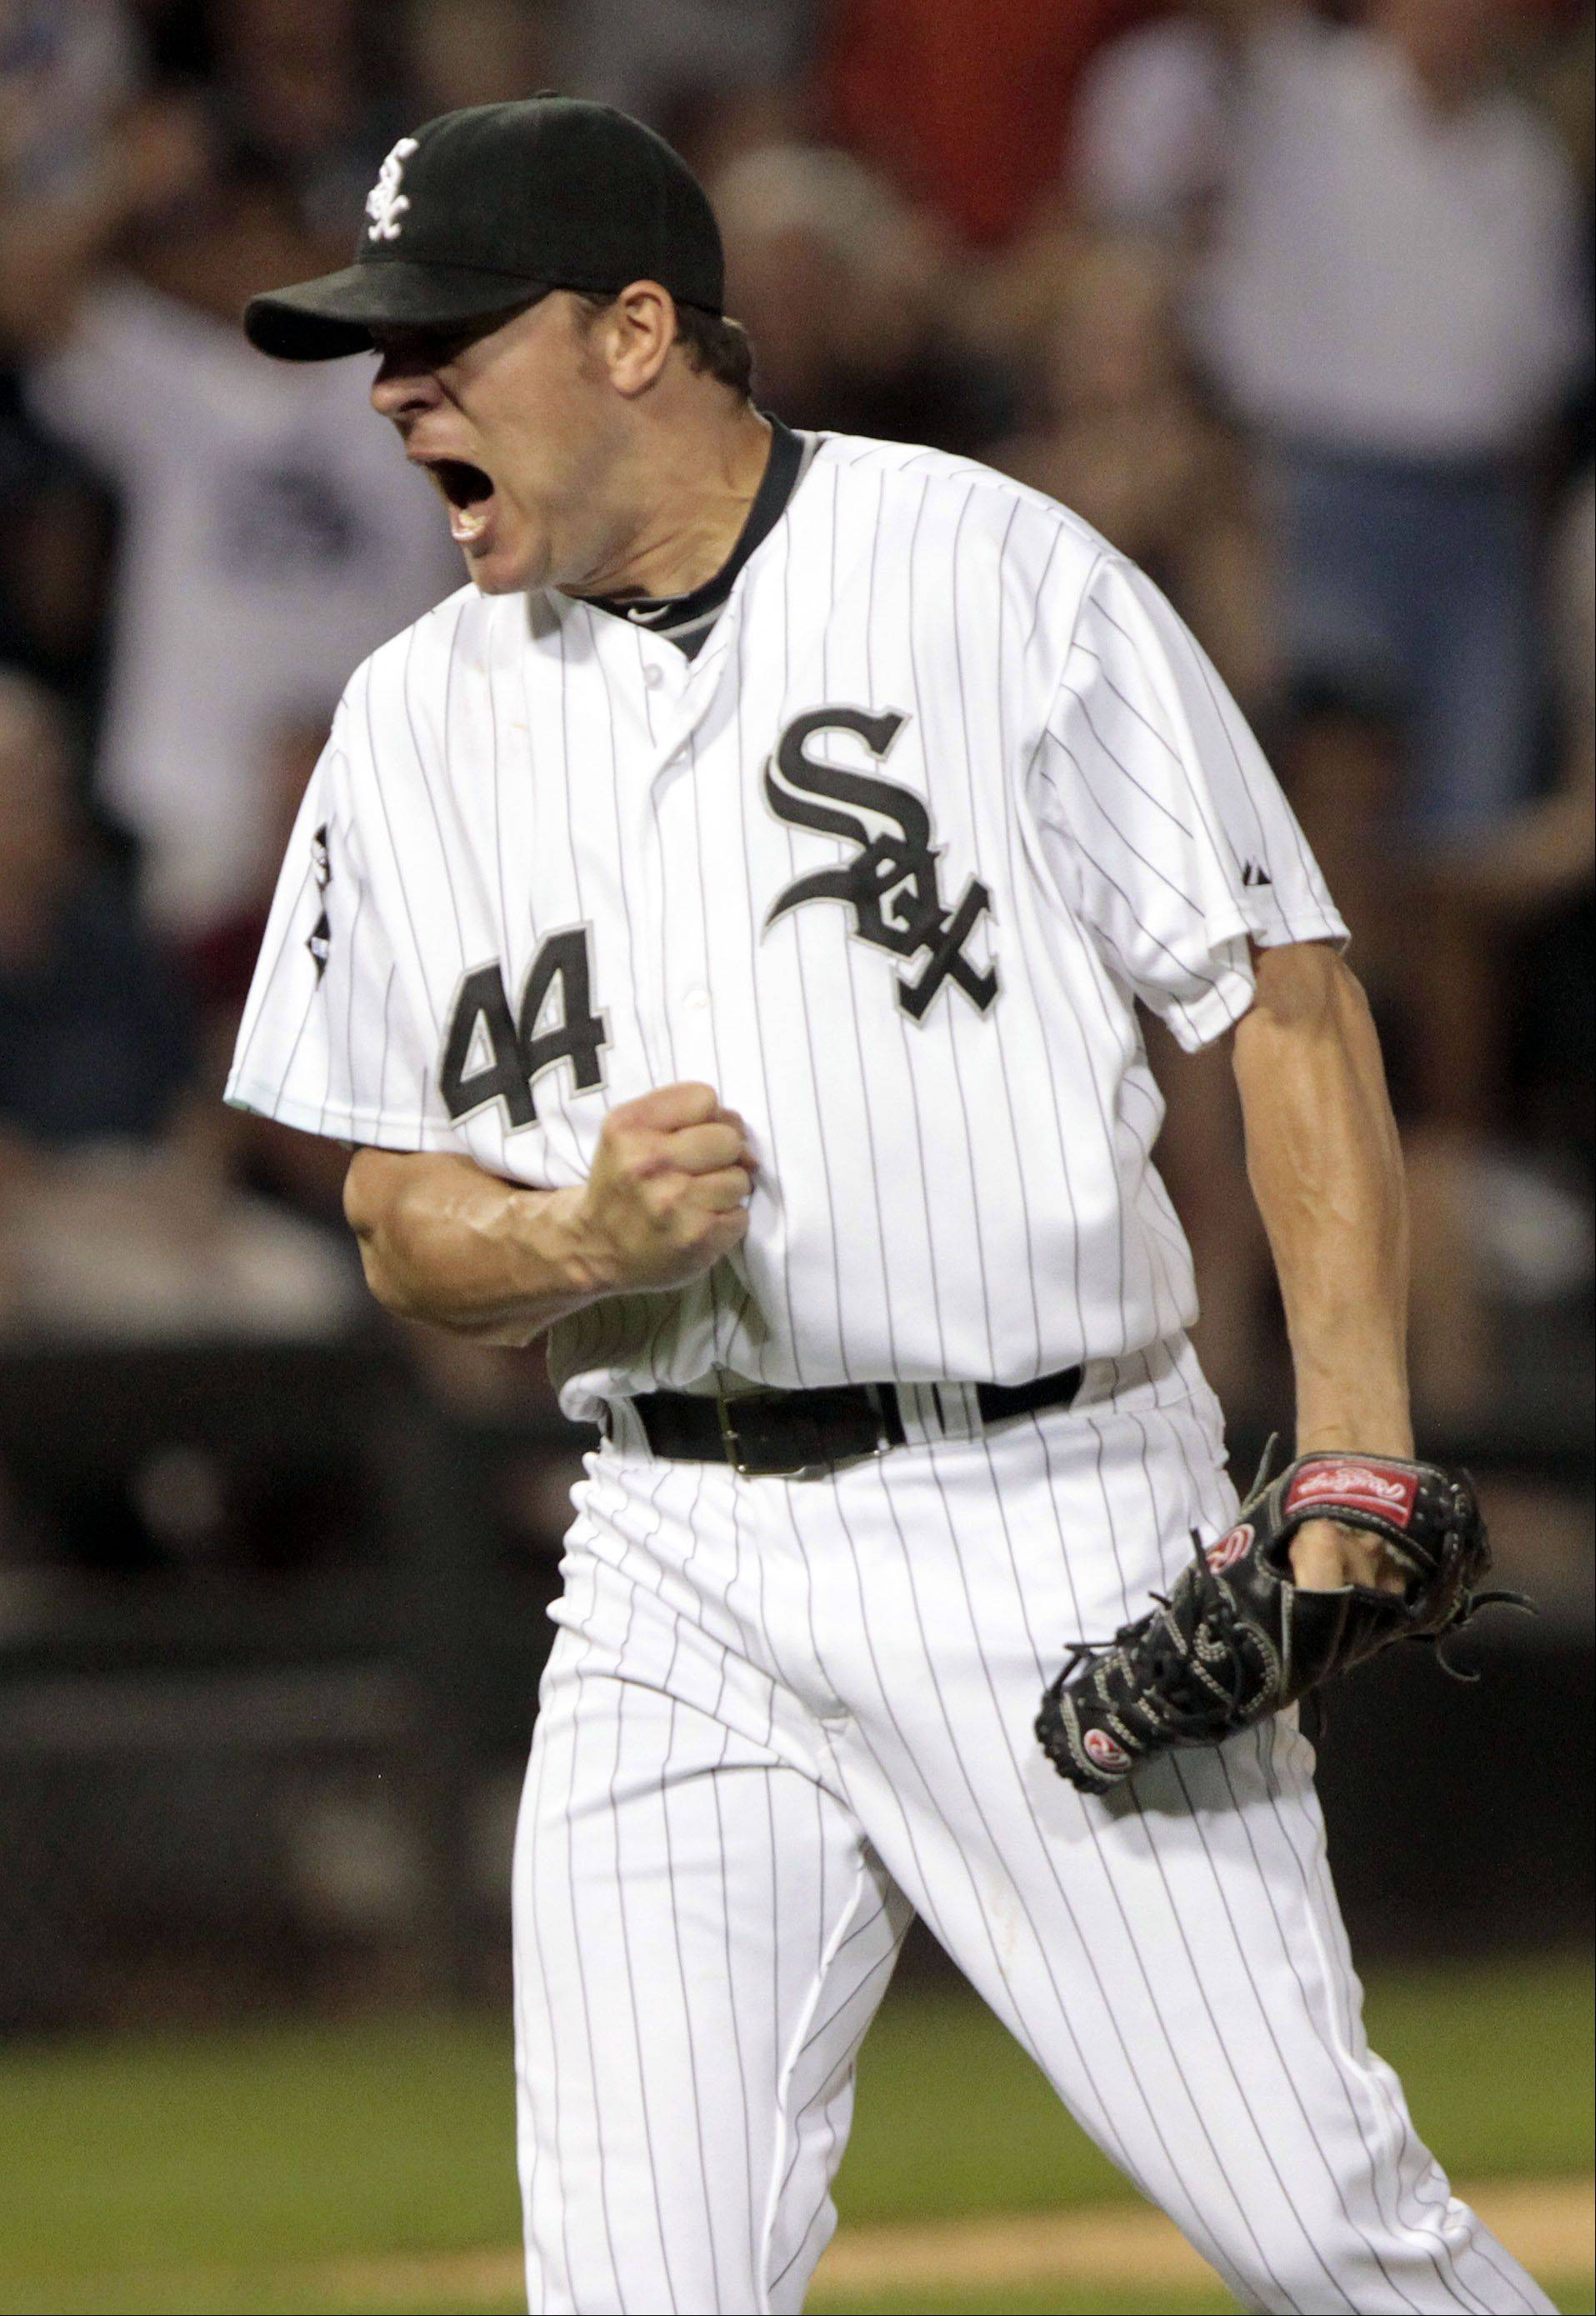 Starting pitcher Jake Peavy�s two-year contract extension is a good deal for the White Sox, according to Scot Gregor.